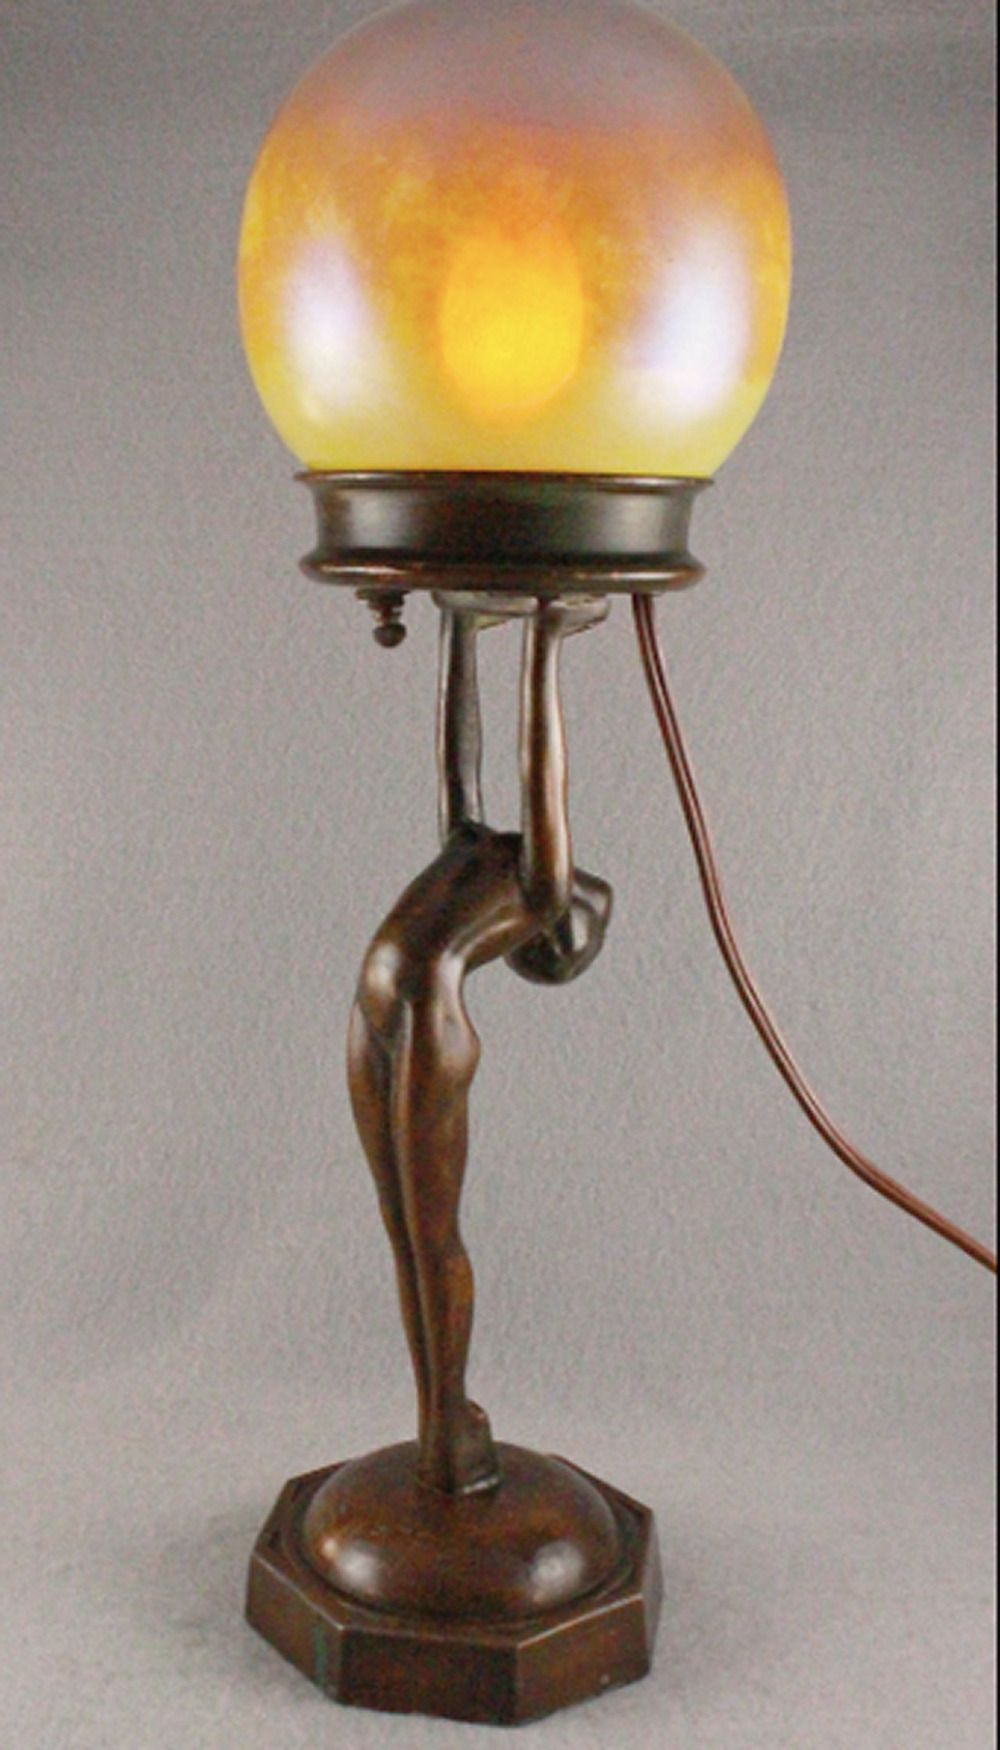 Phenom 1920s Lady Lamp In The Style Of Frankart Nuart With Favrile Style Shade Original Bronze Patina Art Deco Lamps Art Deco Table Lamps Art Deco Lighting